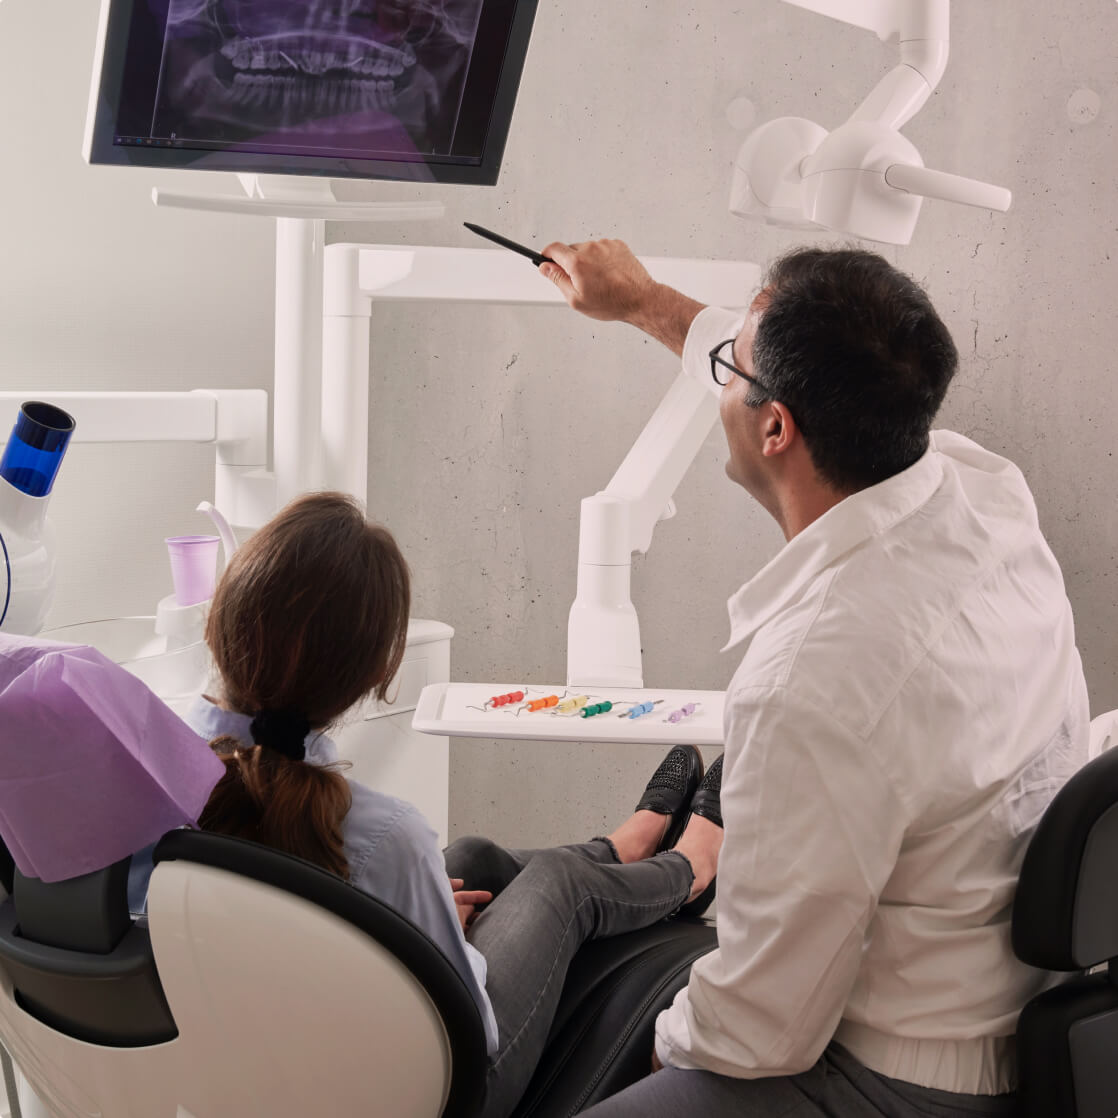 Dentist shows patient something on a monitor